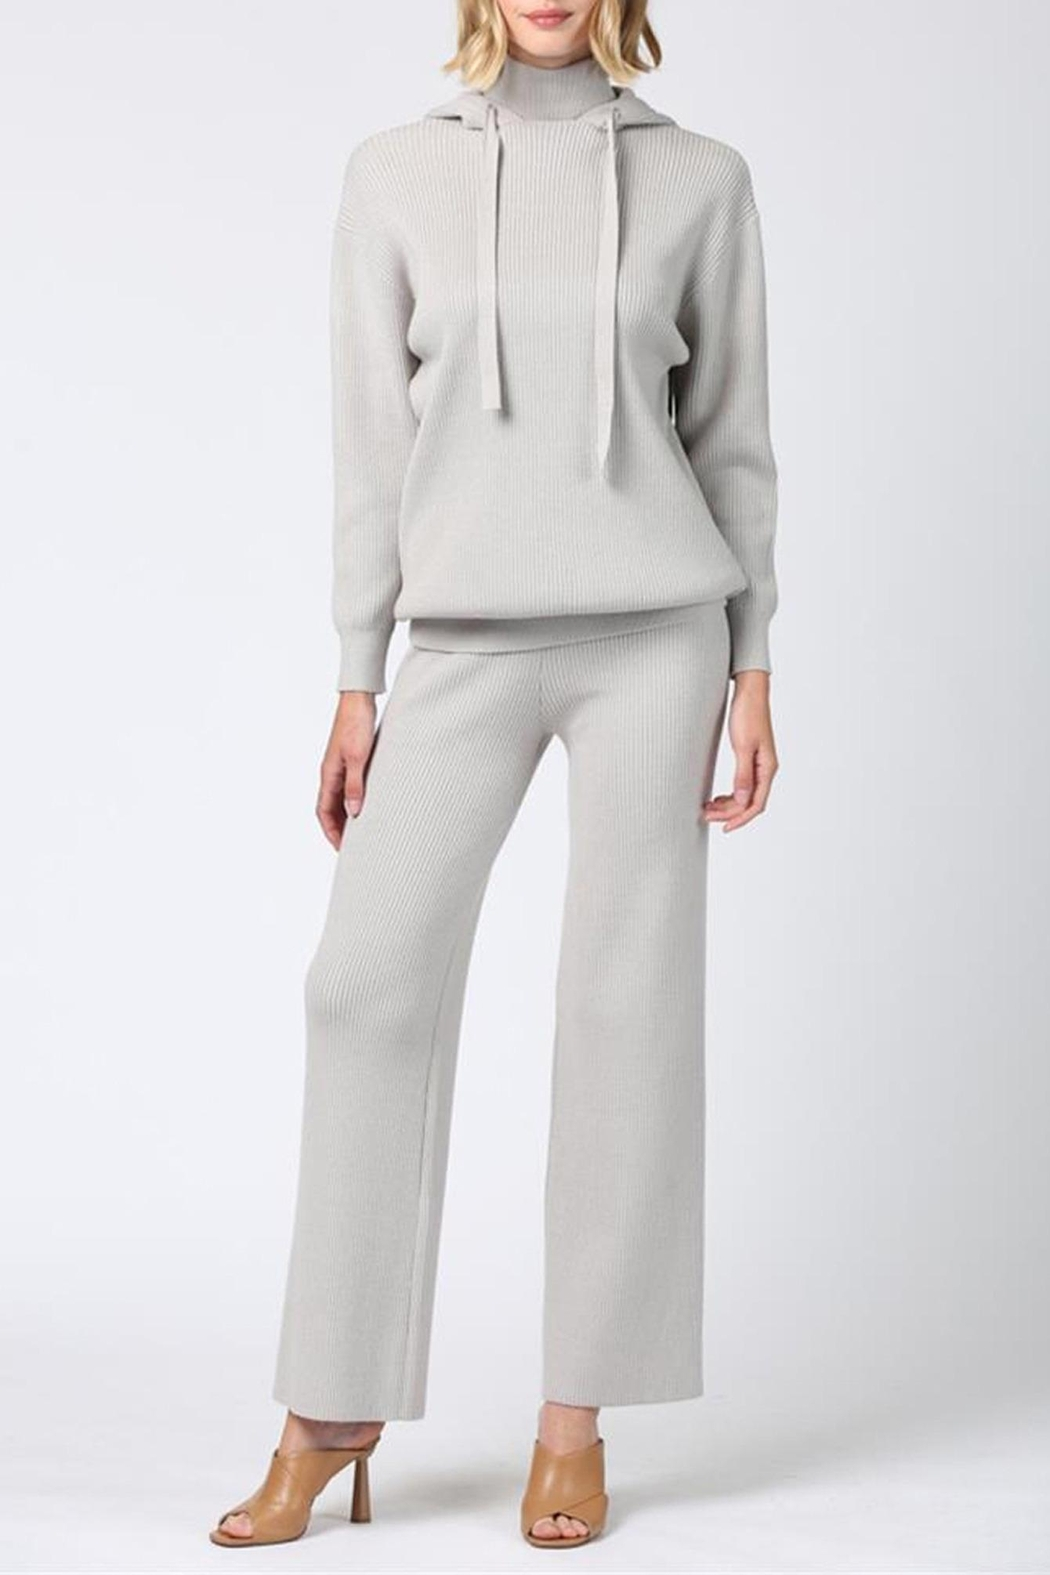 FATE by LFD Flare Knit Pant - Main Image